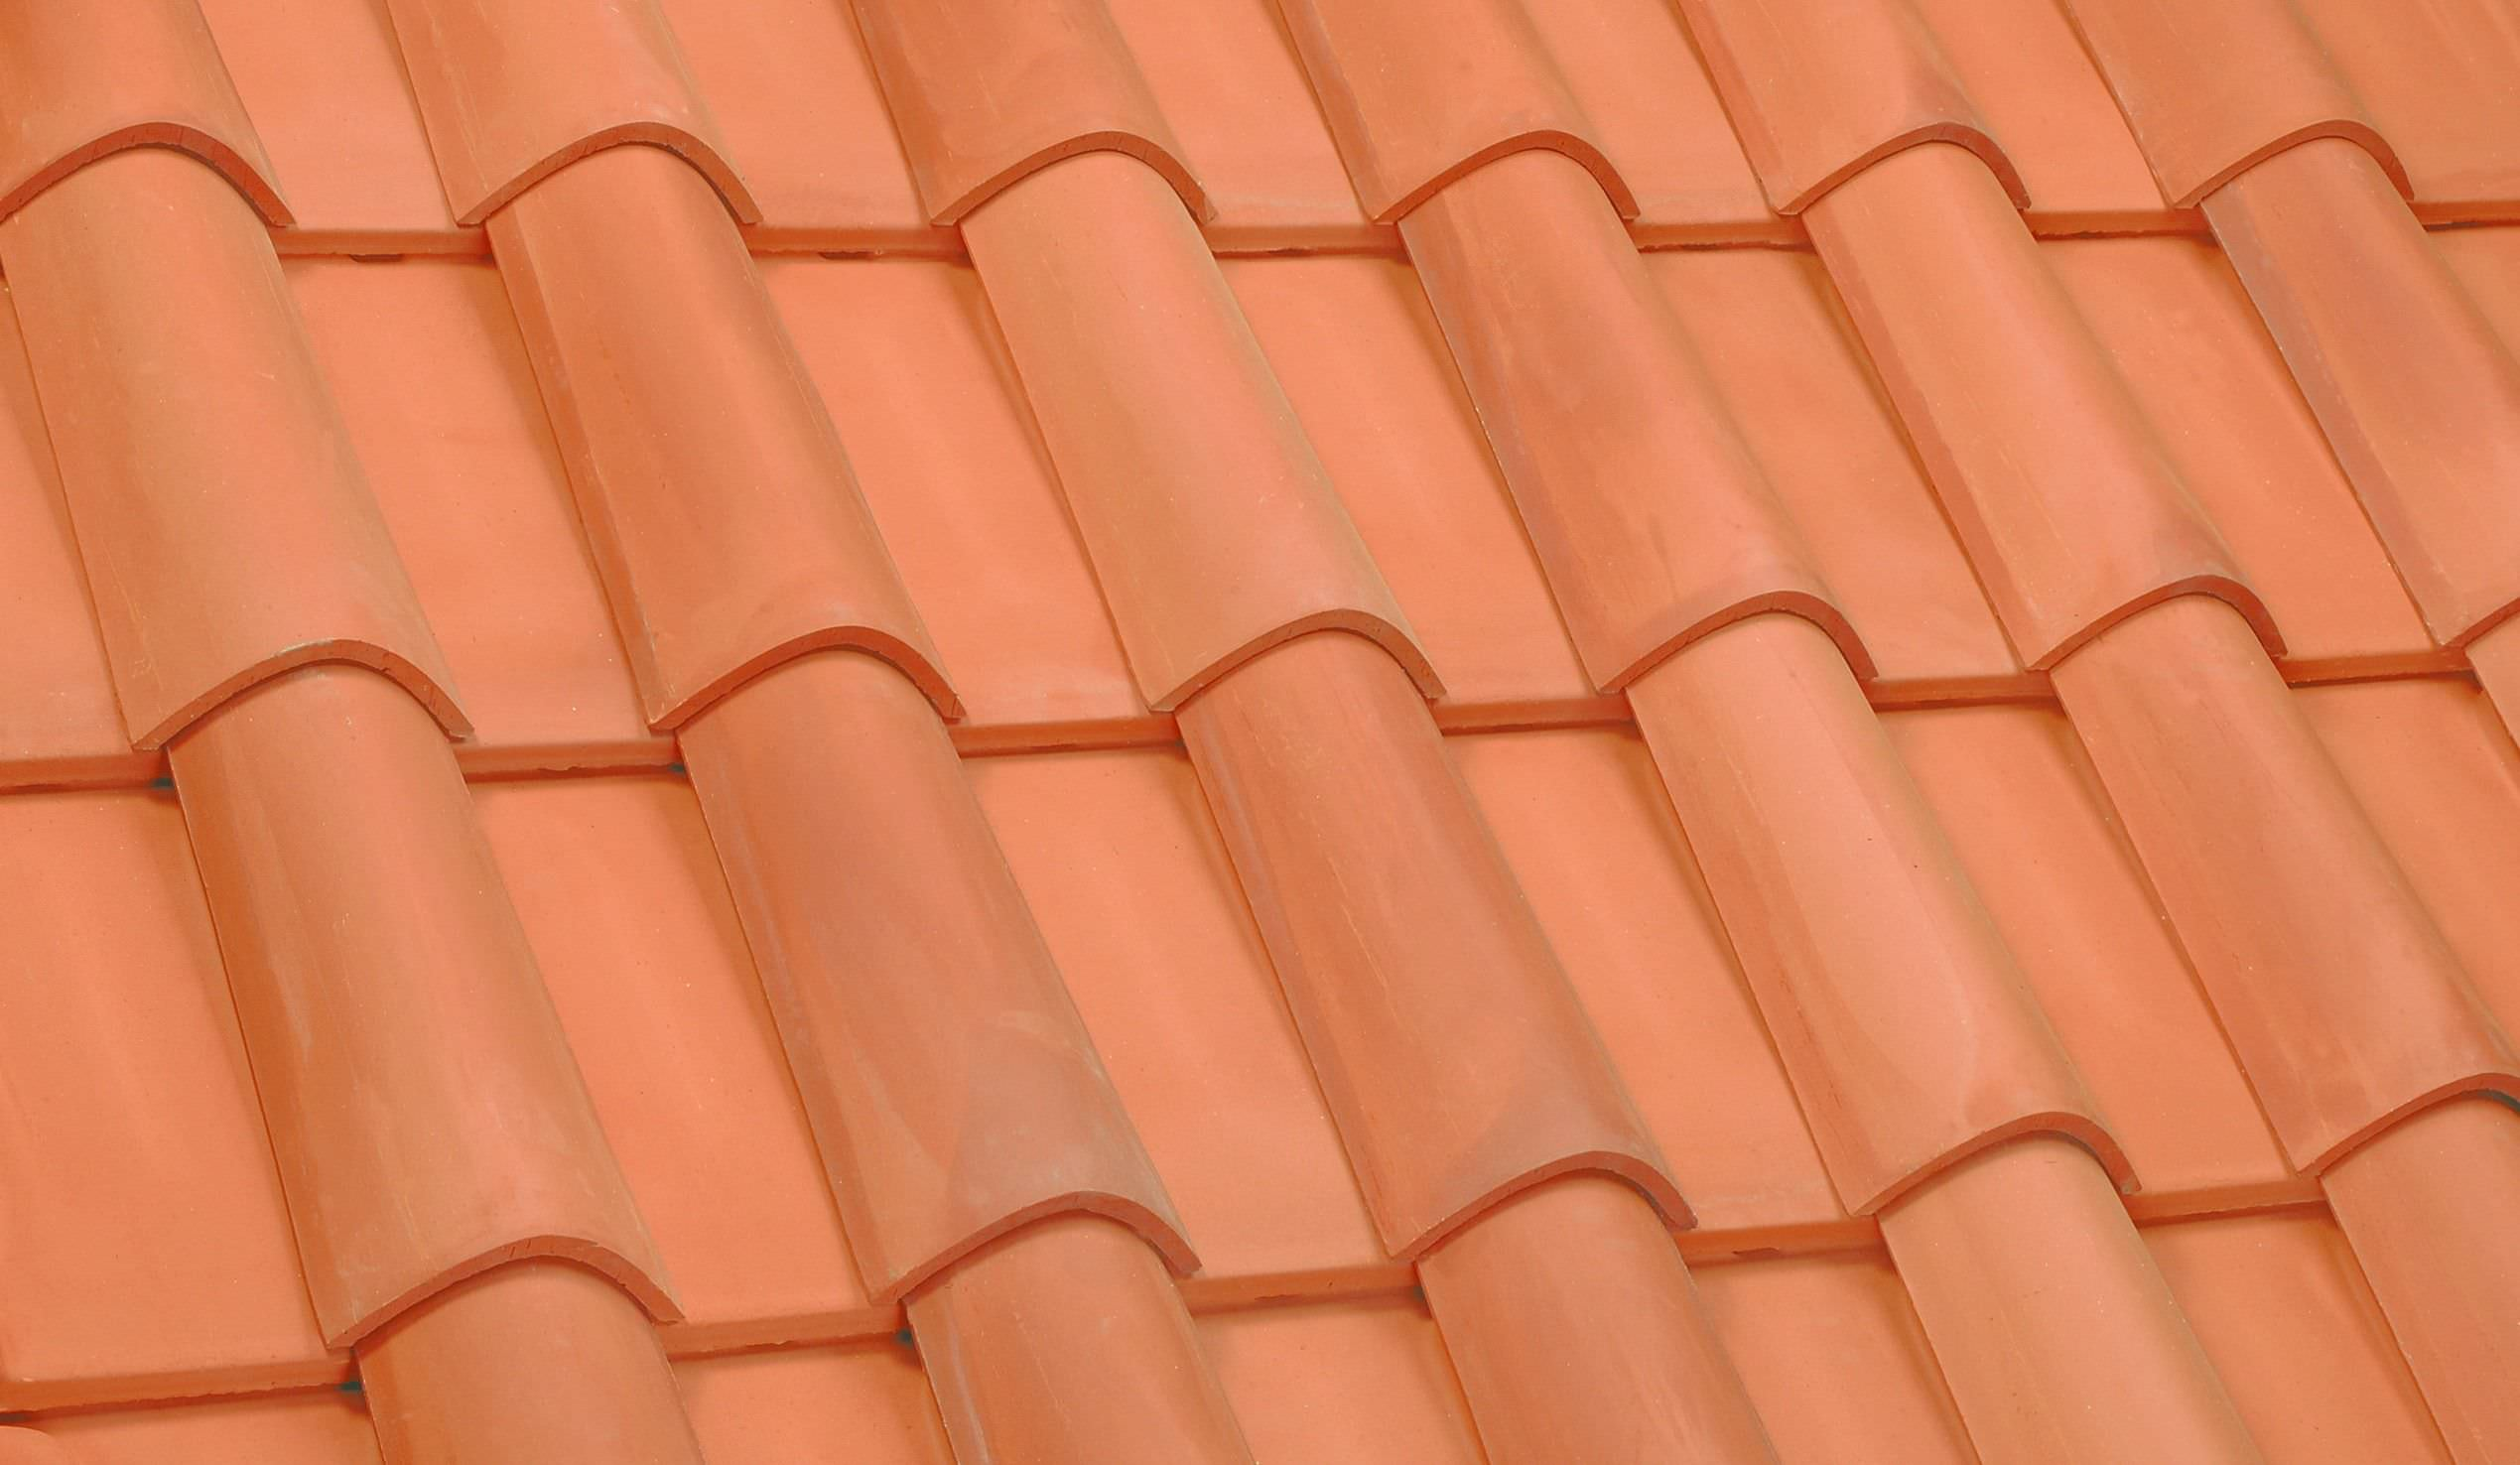 Clay Roofing Tiles Tile Designs